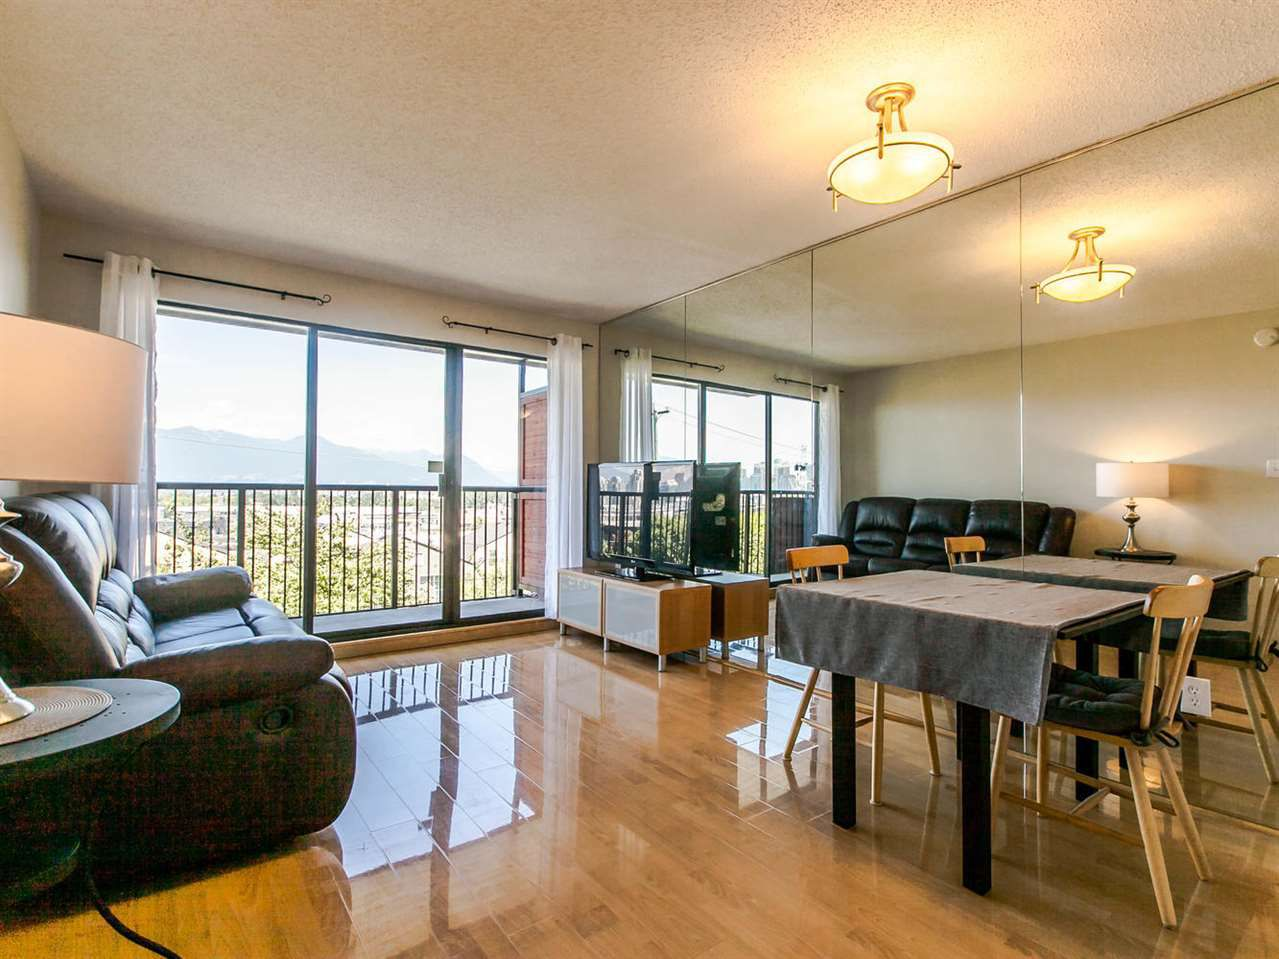 """Main Photo: 305 2142 CAROLINA Street in Vancouver: Mount Pleasant VE Condo for sale in """"WOOD DALE"""" (Vancouver East)  : MLS®# R2086873"""